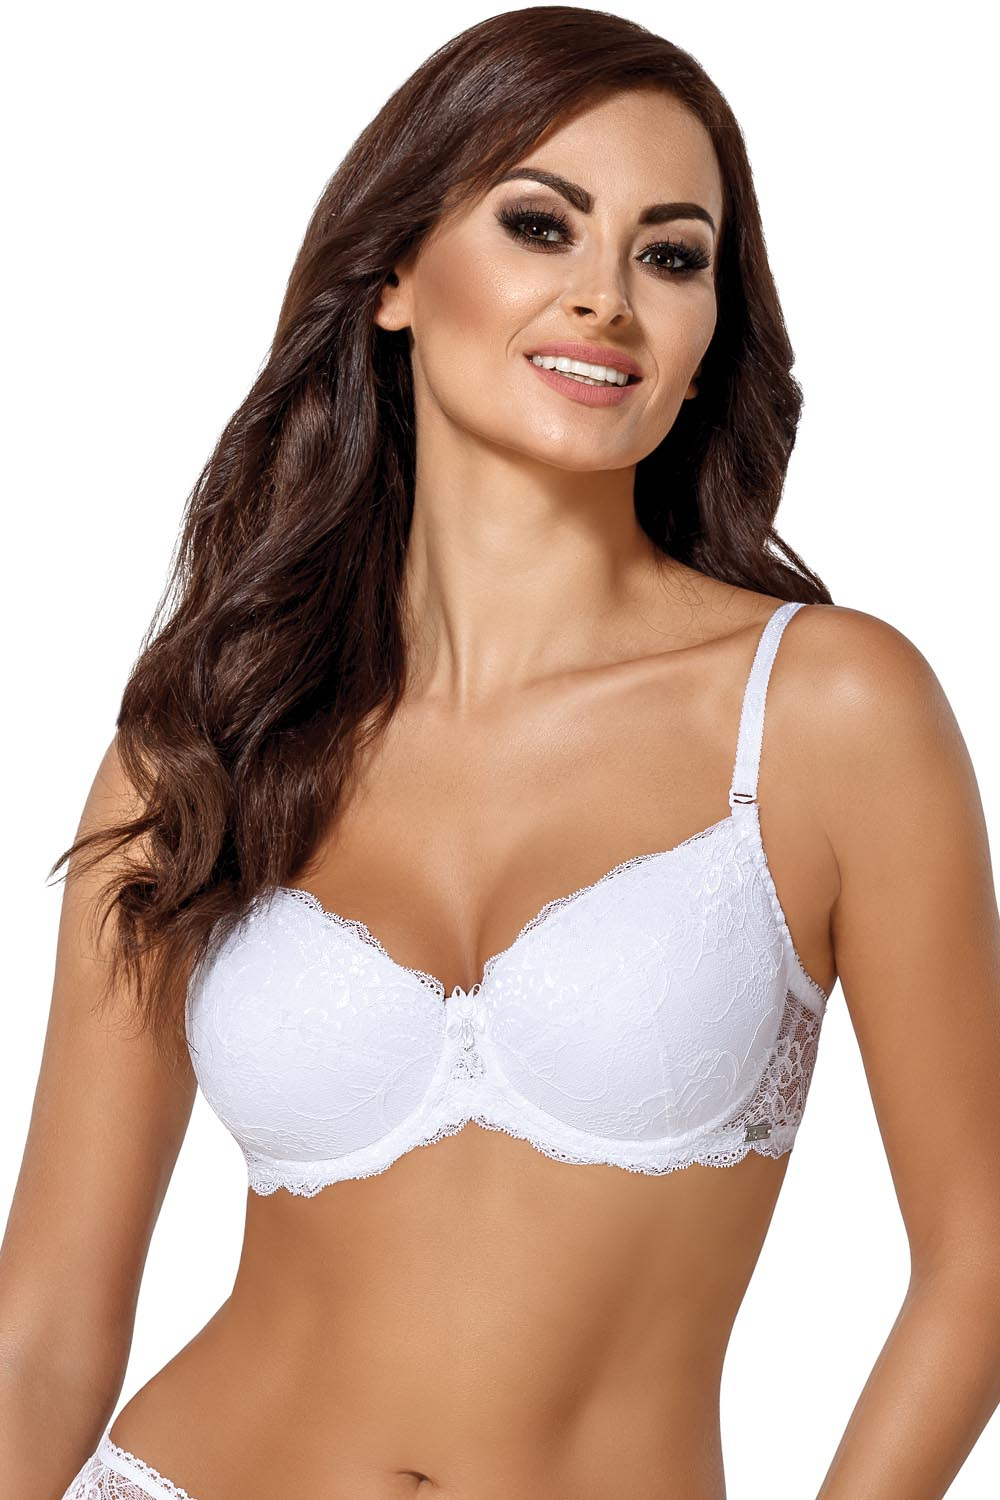 1b6460673d Ava underwired lace padded push-up bra 1638 Vicky